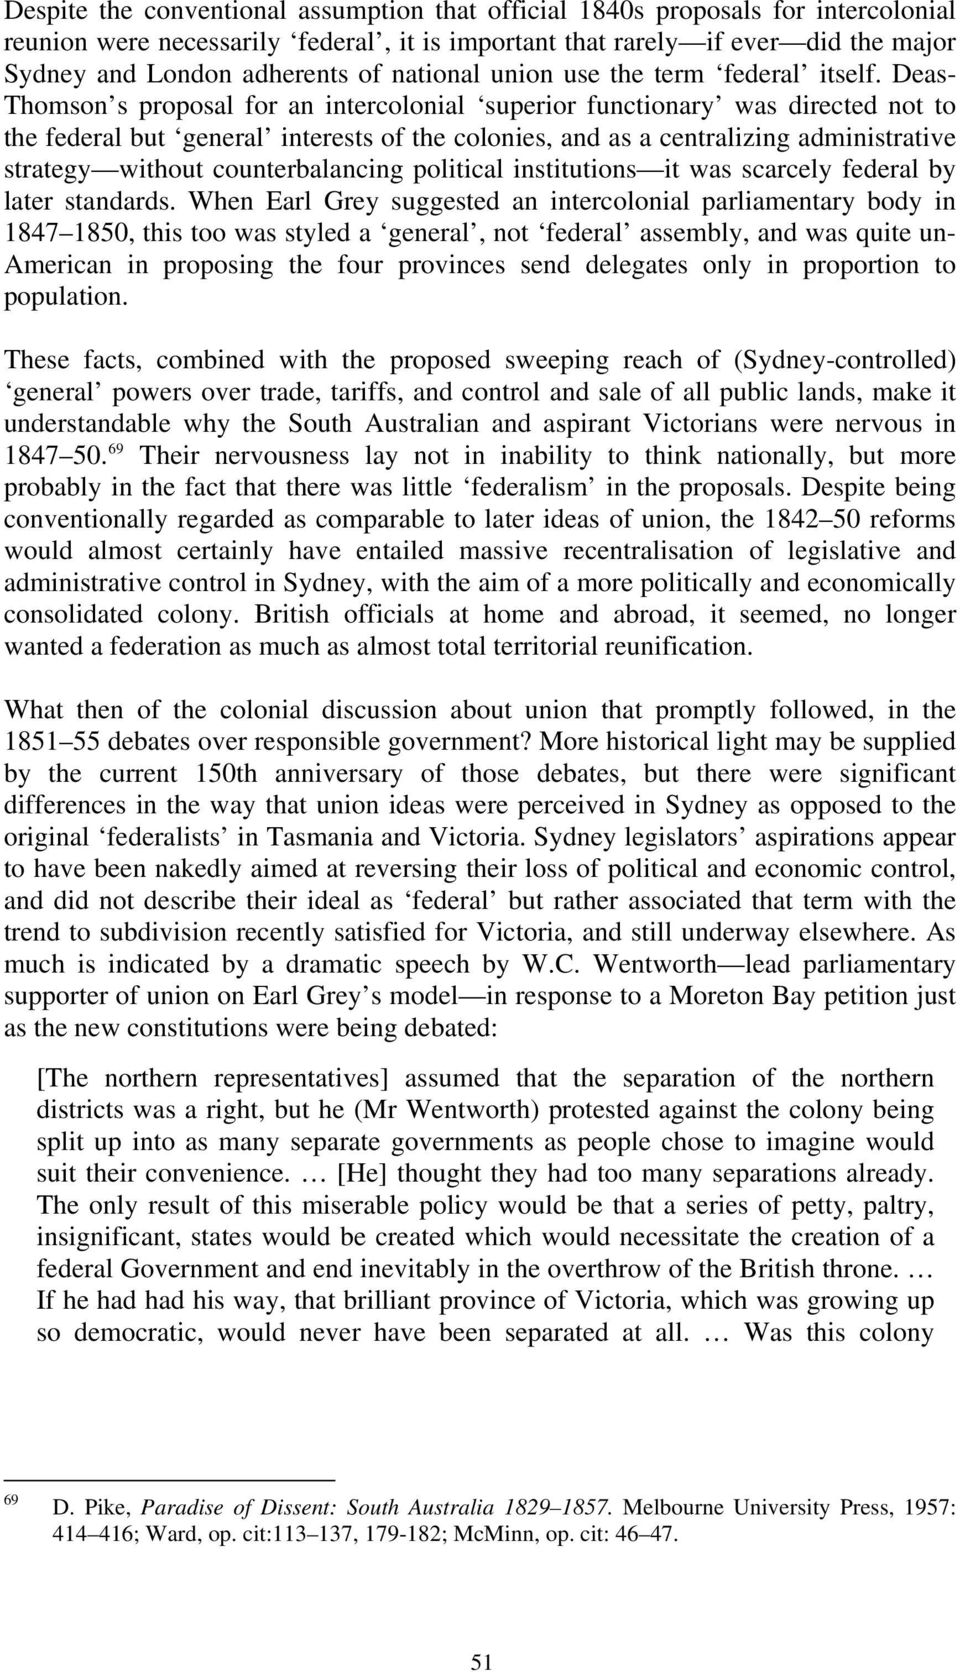 Deas- Thomson s proposal for an intercolonial superior functionary was directed not to the federal but general interests of the colonies, and as a centralizing administrative strategy without